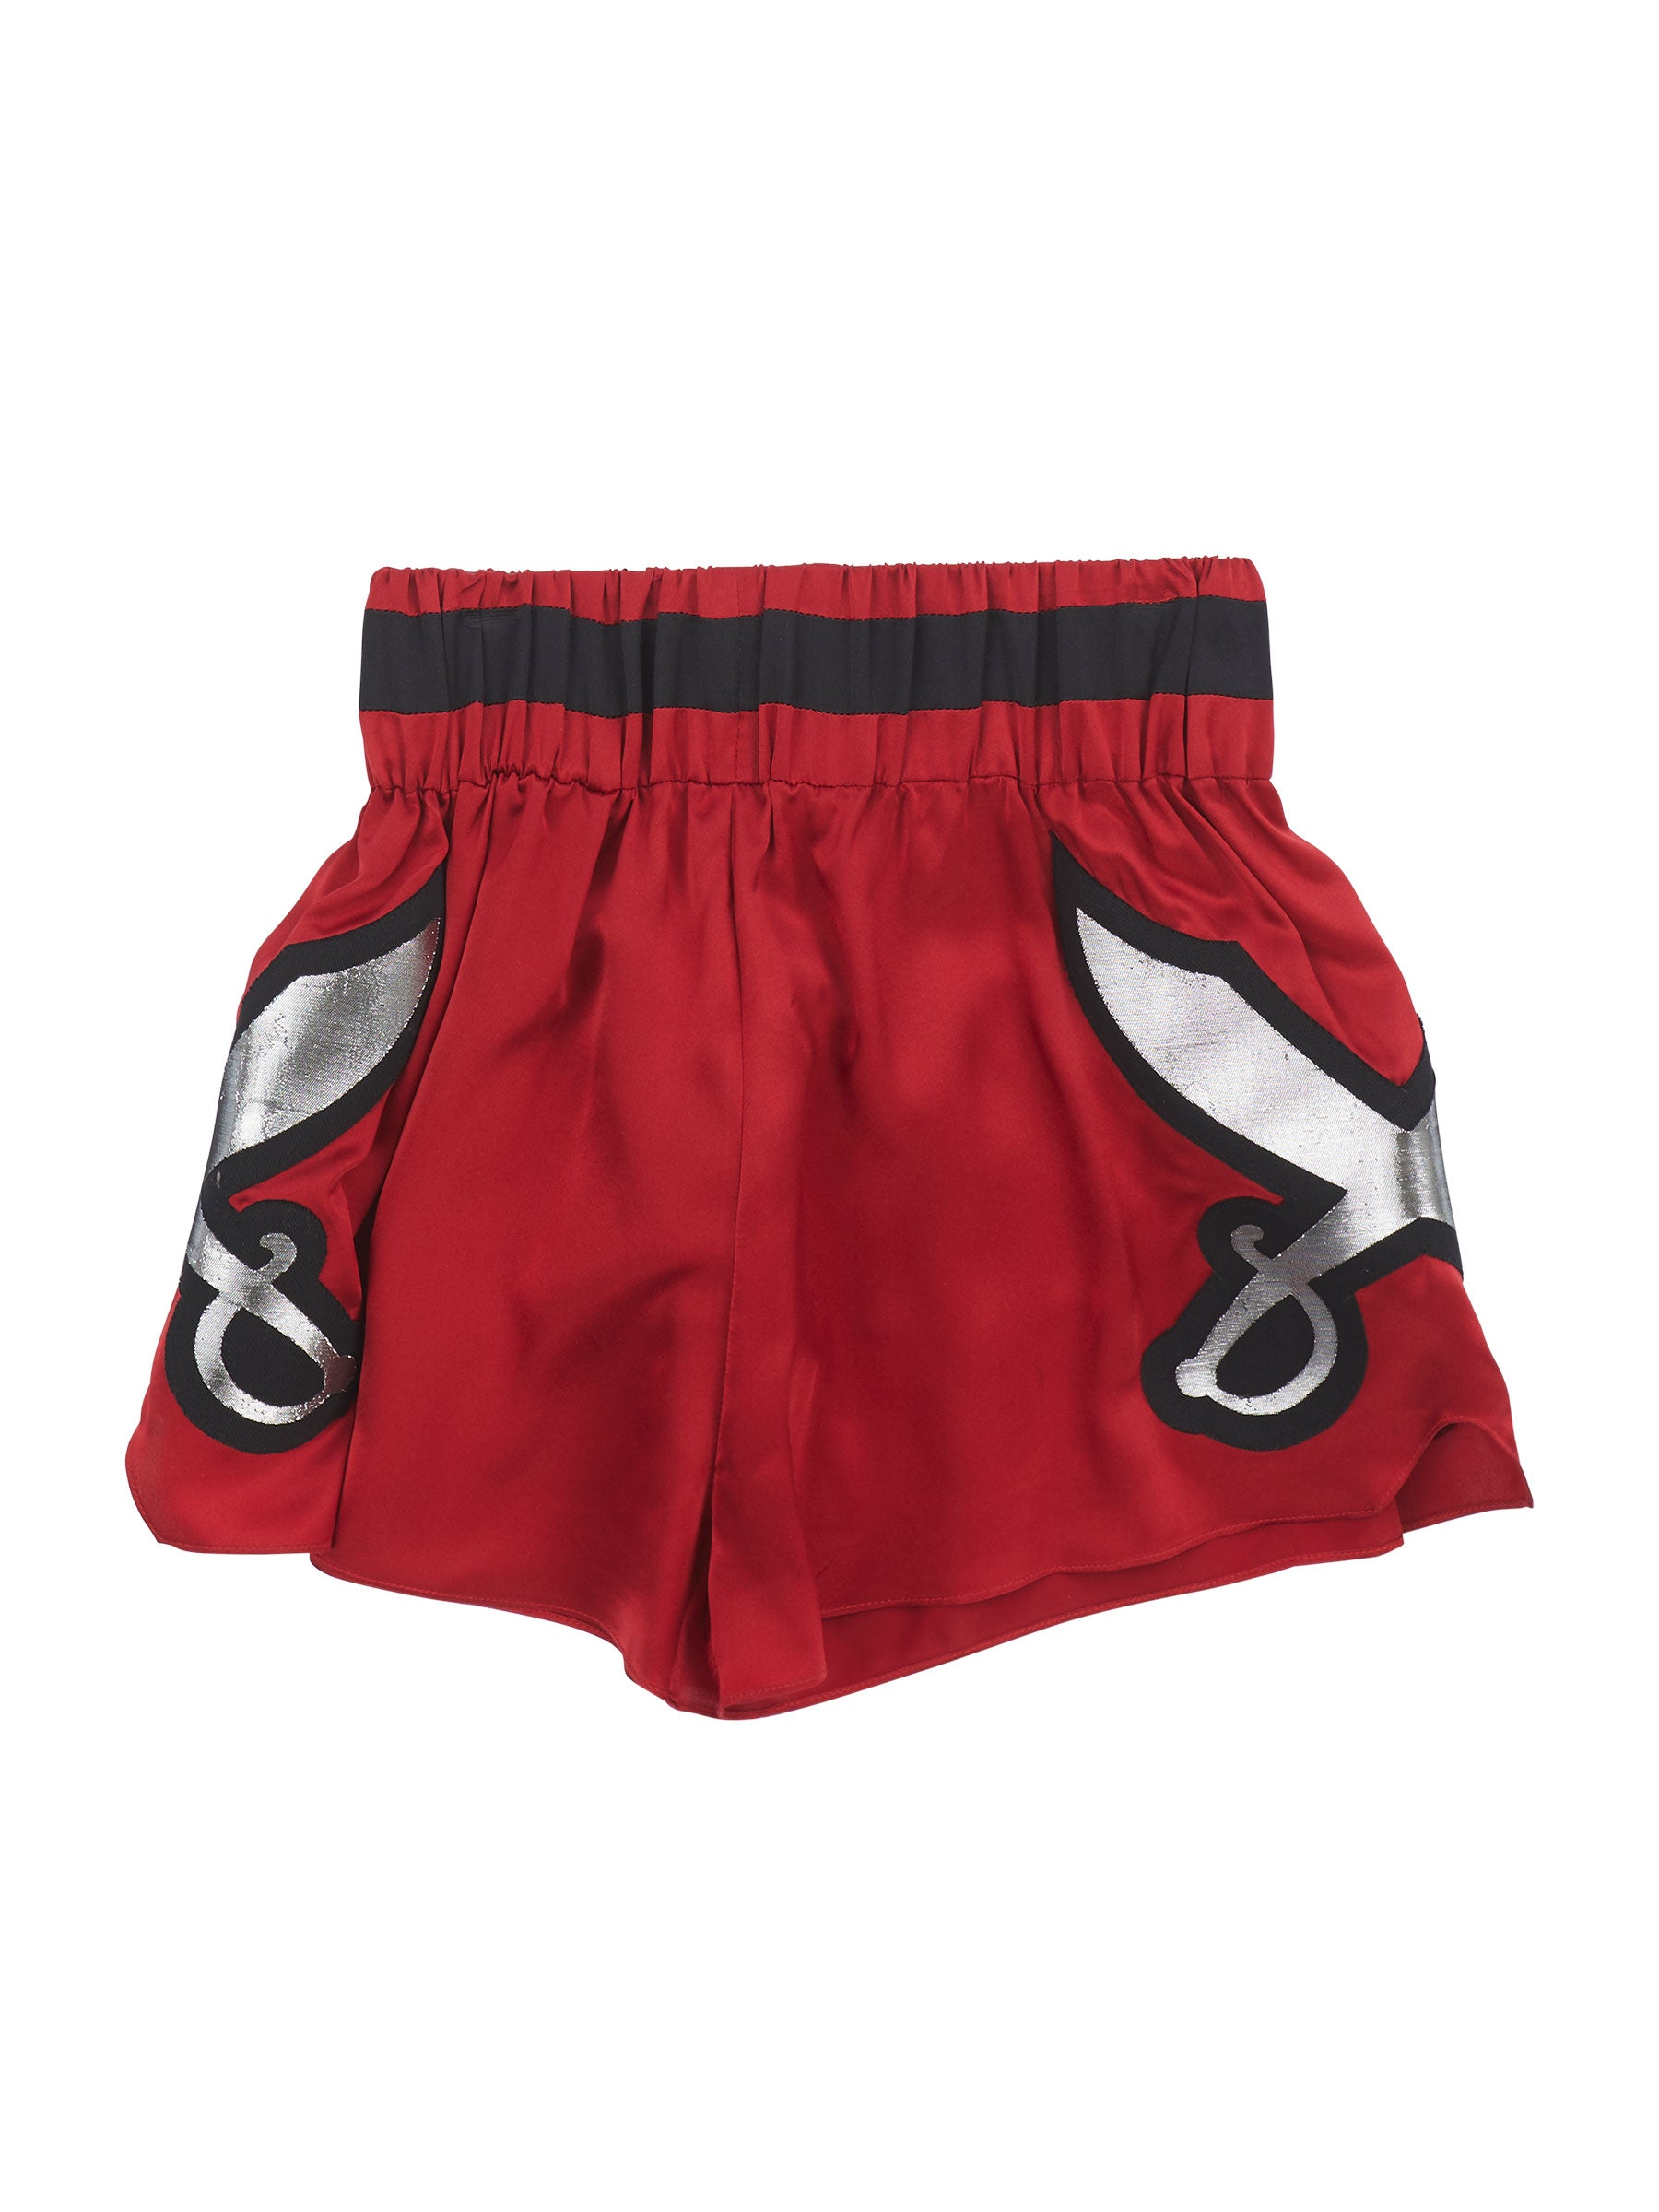 ARCHIVE Thai Boxing Shorts